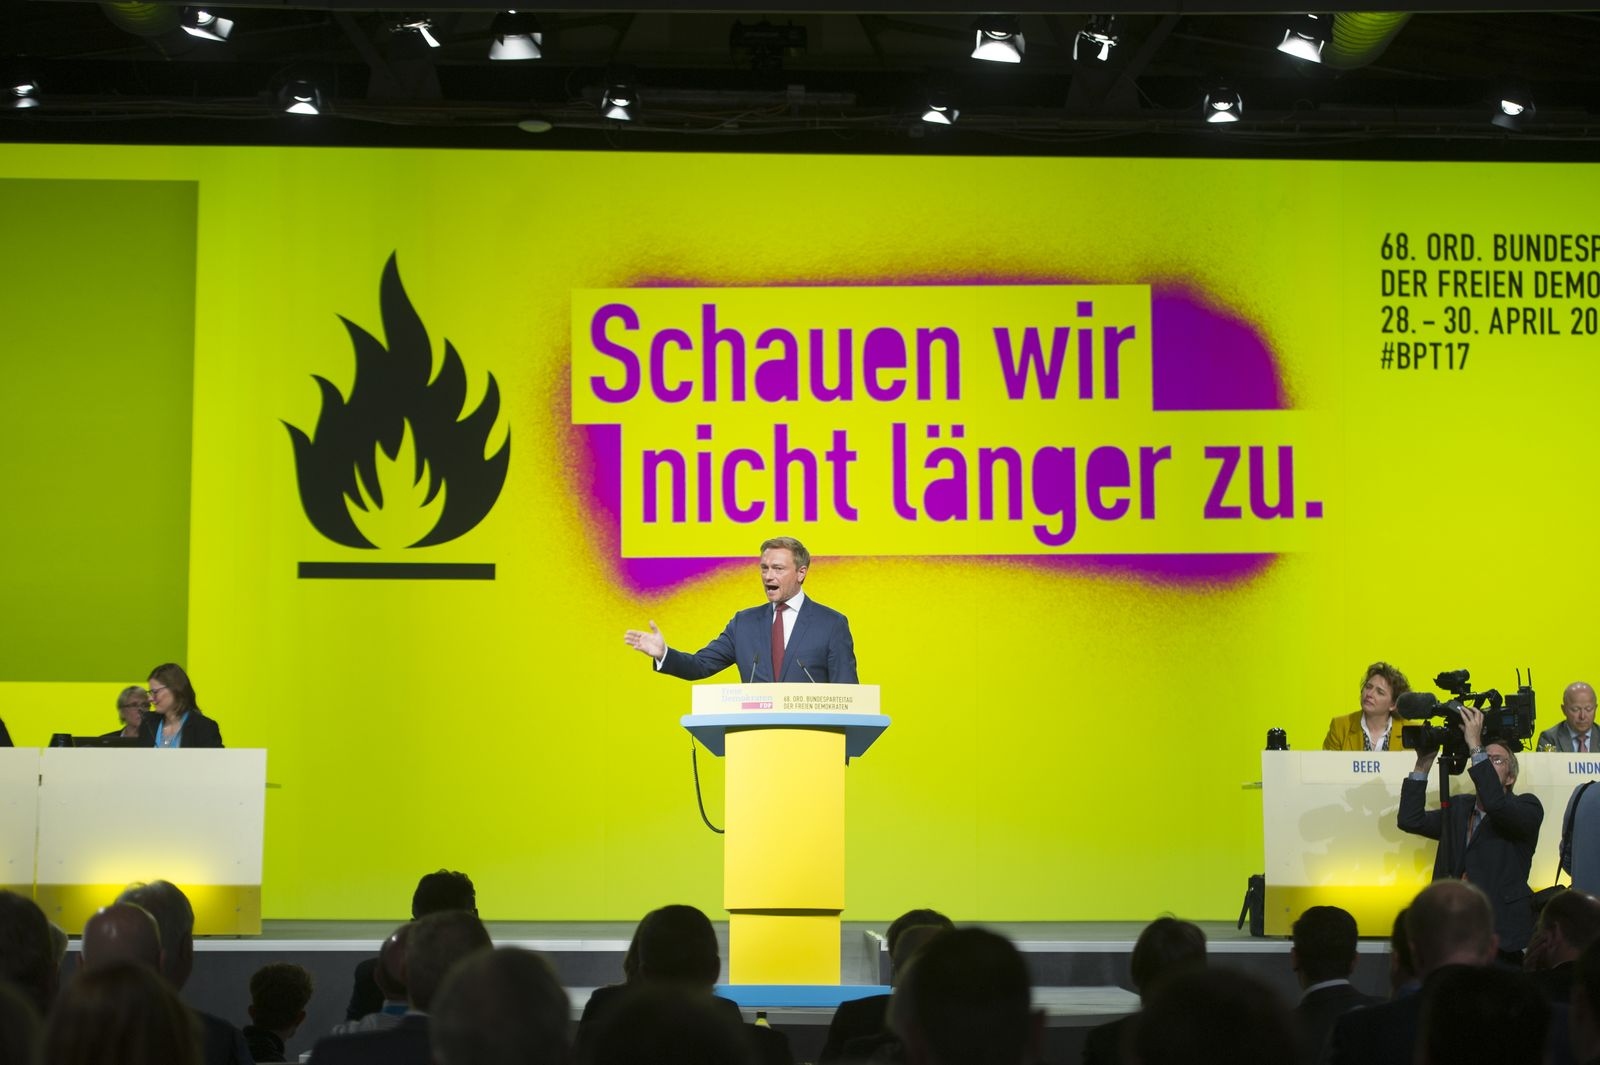 FDP/ Christian Lindner